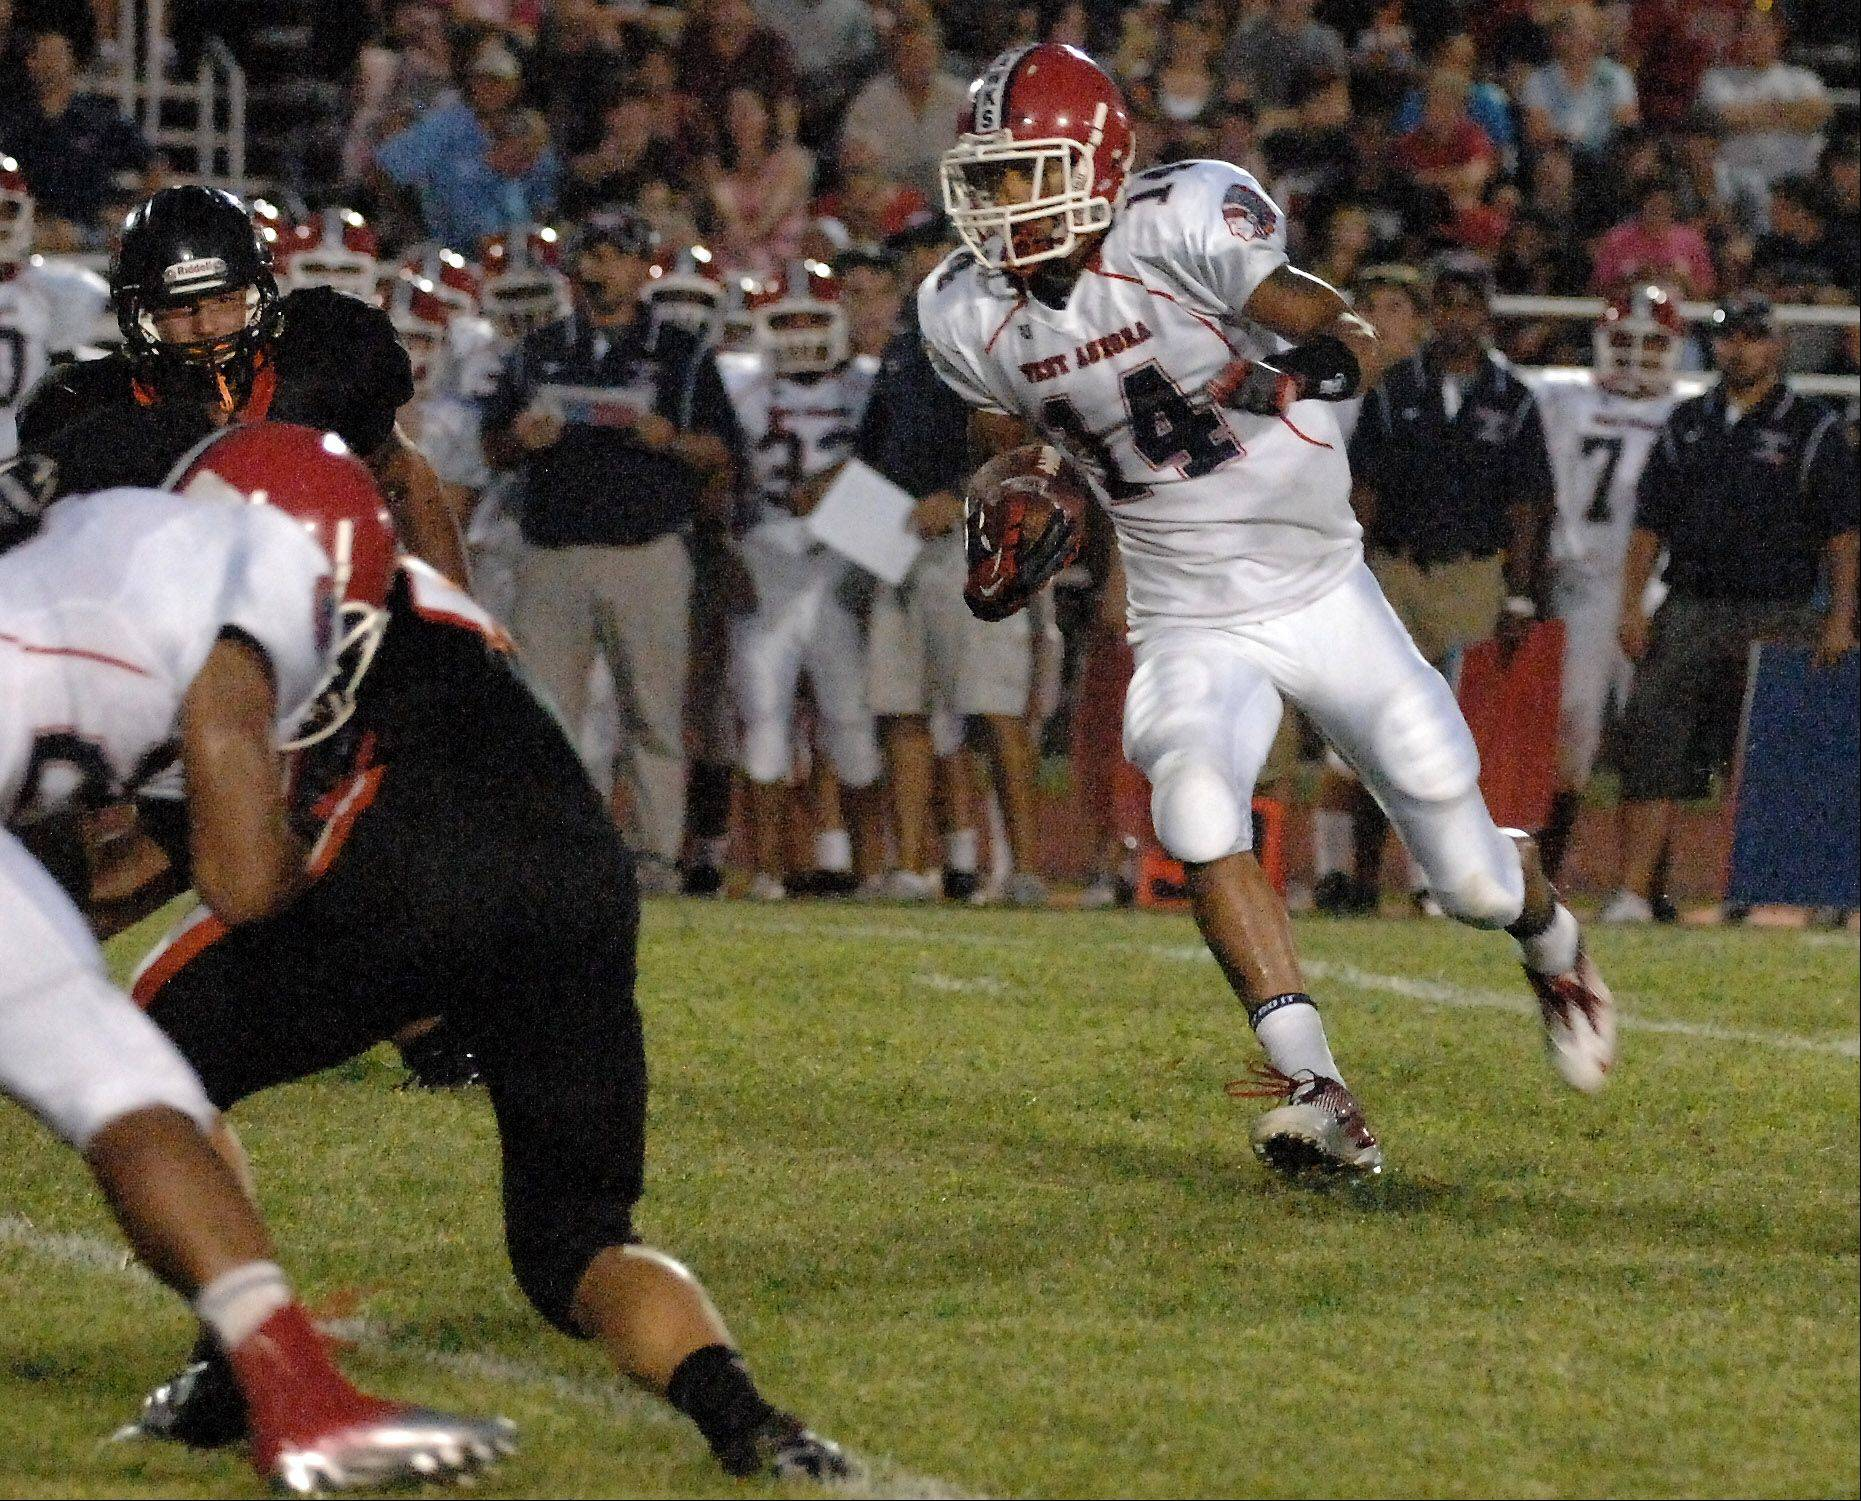 West Aurora's Cole Childs picks up some yards after a reception.